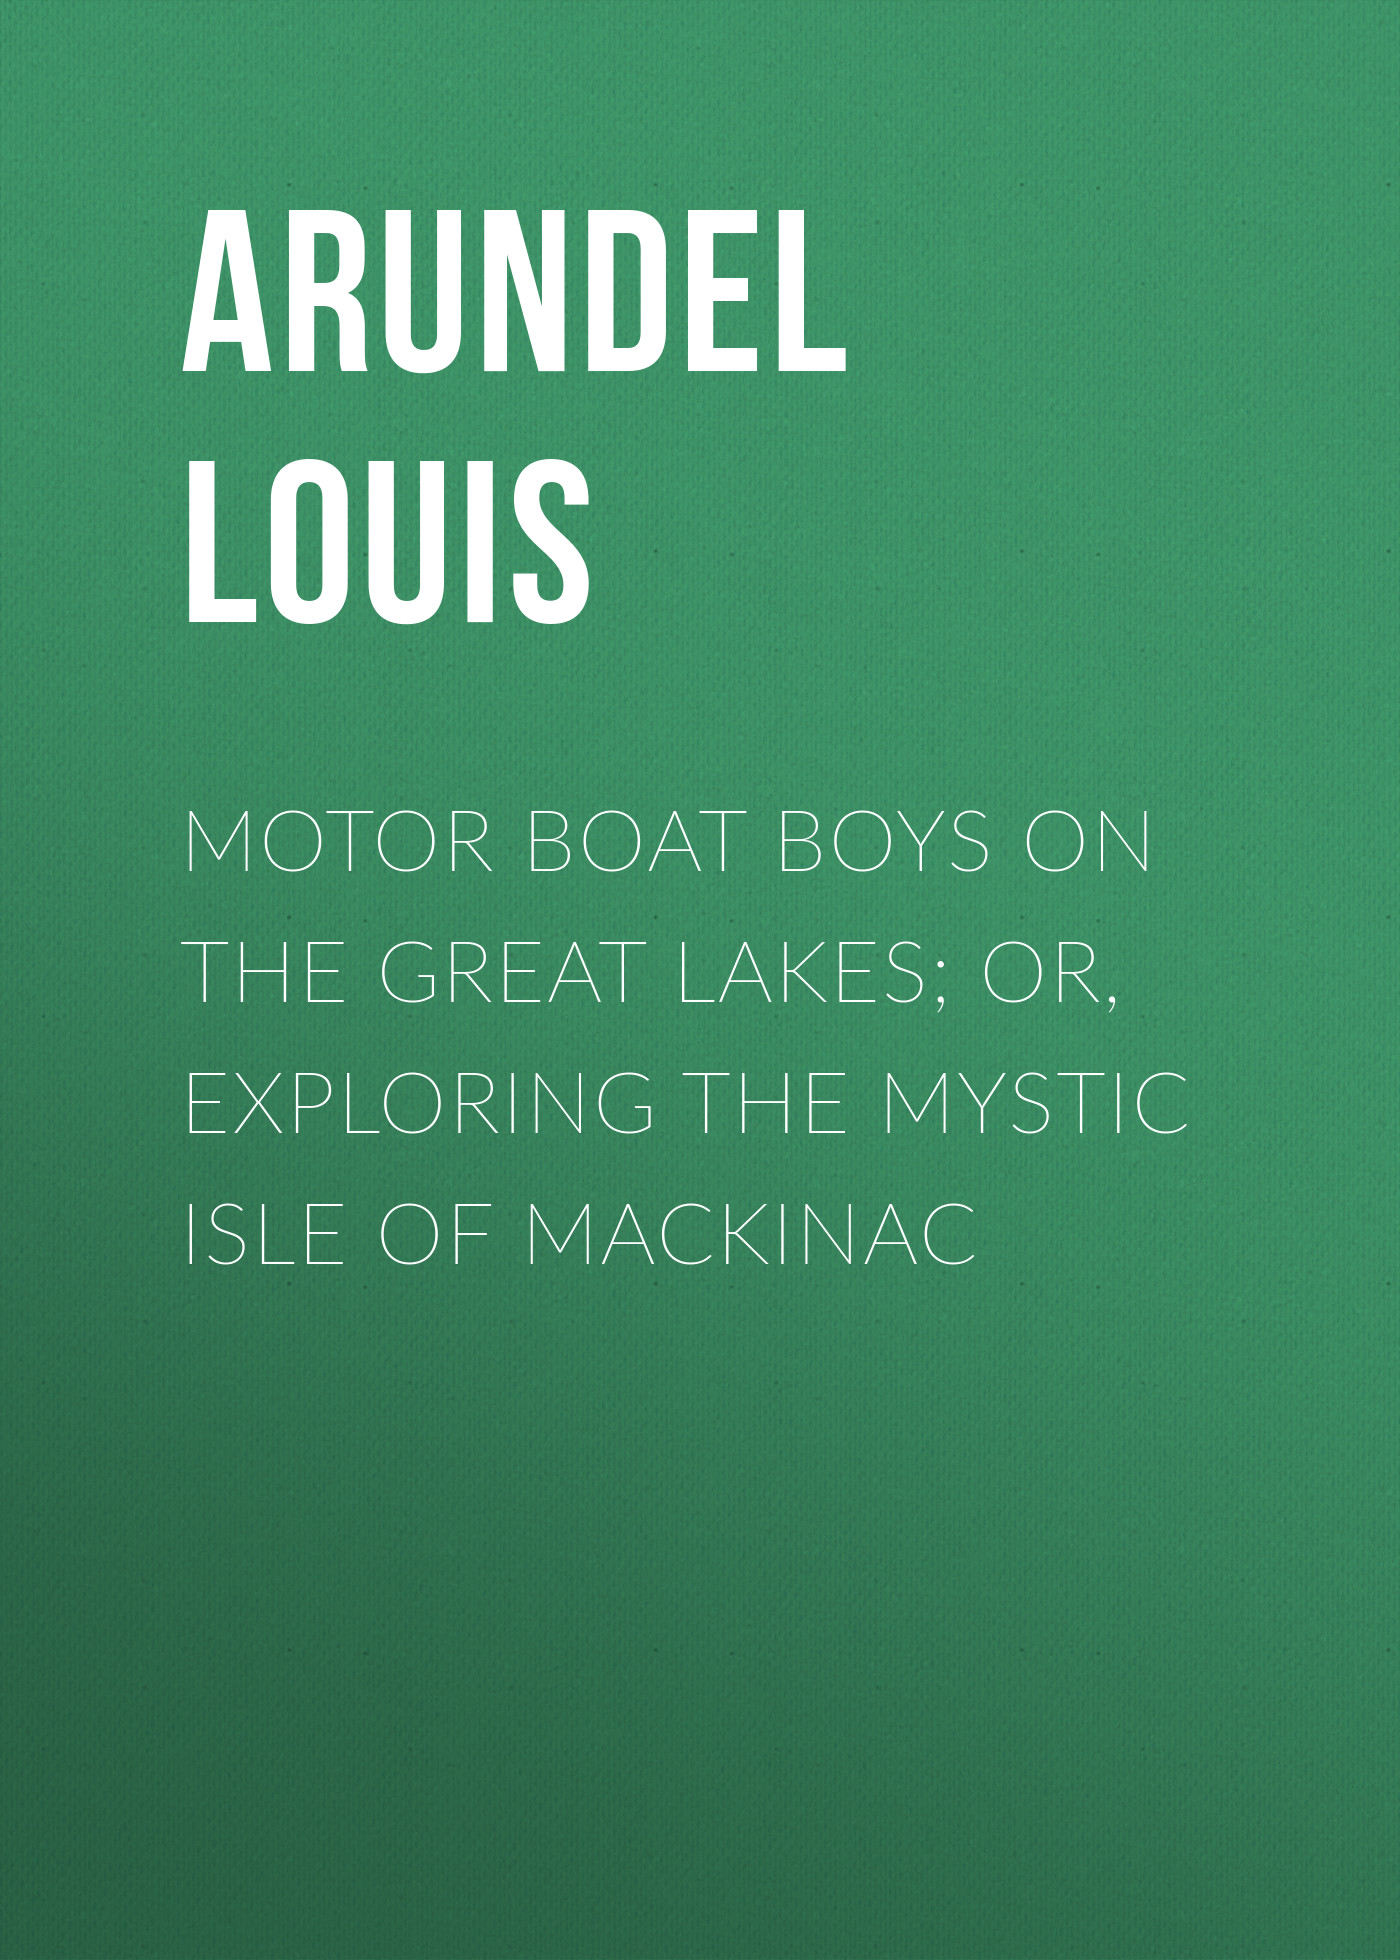 Arundel Louis Motor Boat Boys on the Great Lakes; or, Exploring the Mystic Isle of Mackinac c c meigs report on texas alkali lakes 1922